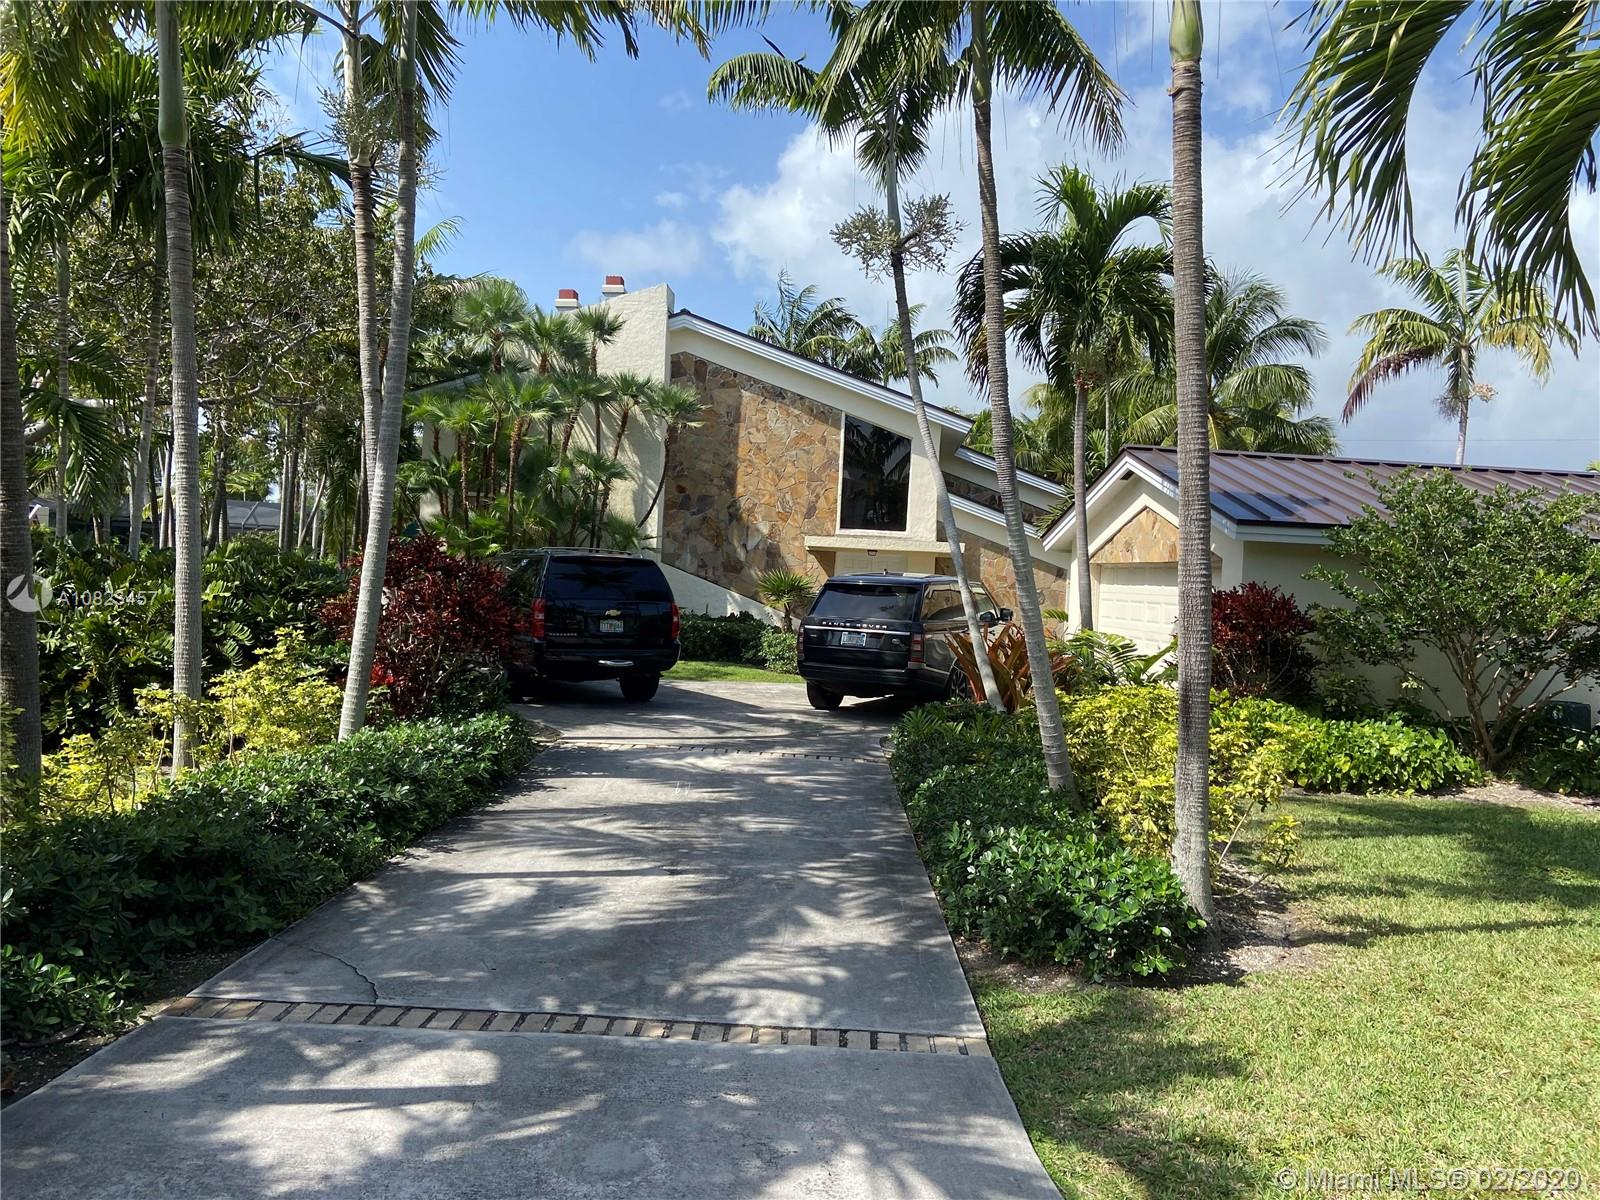 14540 Sailfish Dr, Coral Gables, Florida 33158, 5 Bedrooms Bedrooms, ,3 BathroomsBathrooms,Residential,For Sale,14540 Sailfish Dr,A10823457